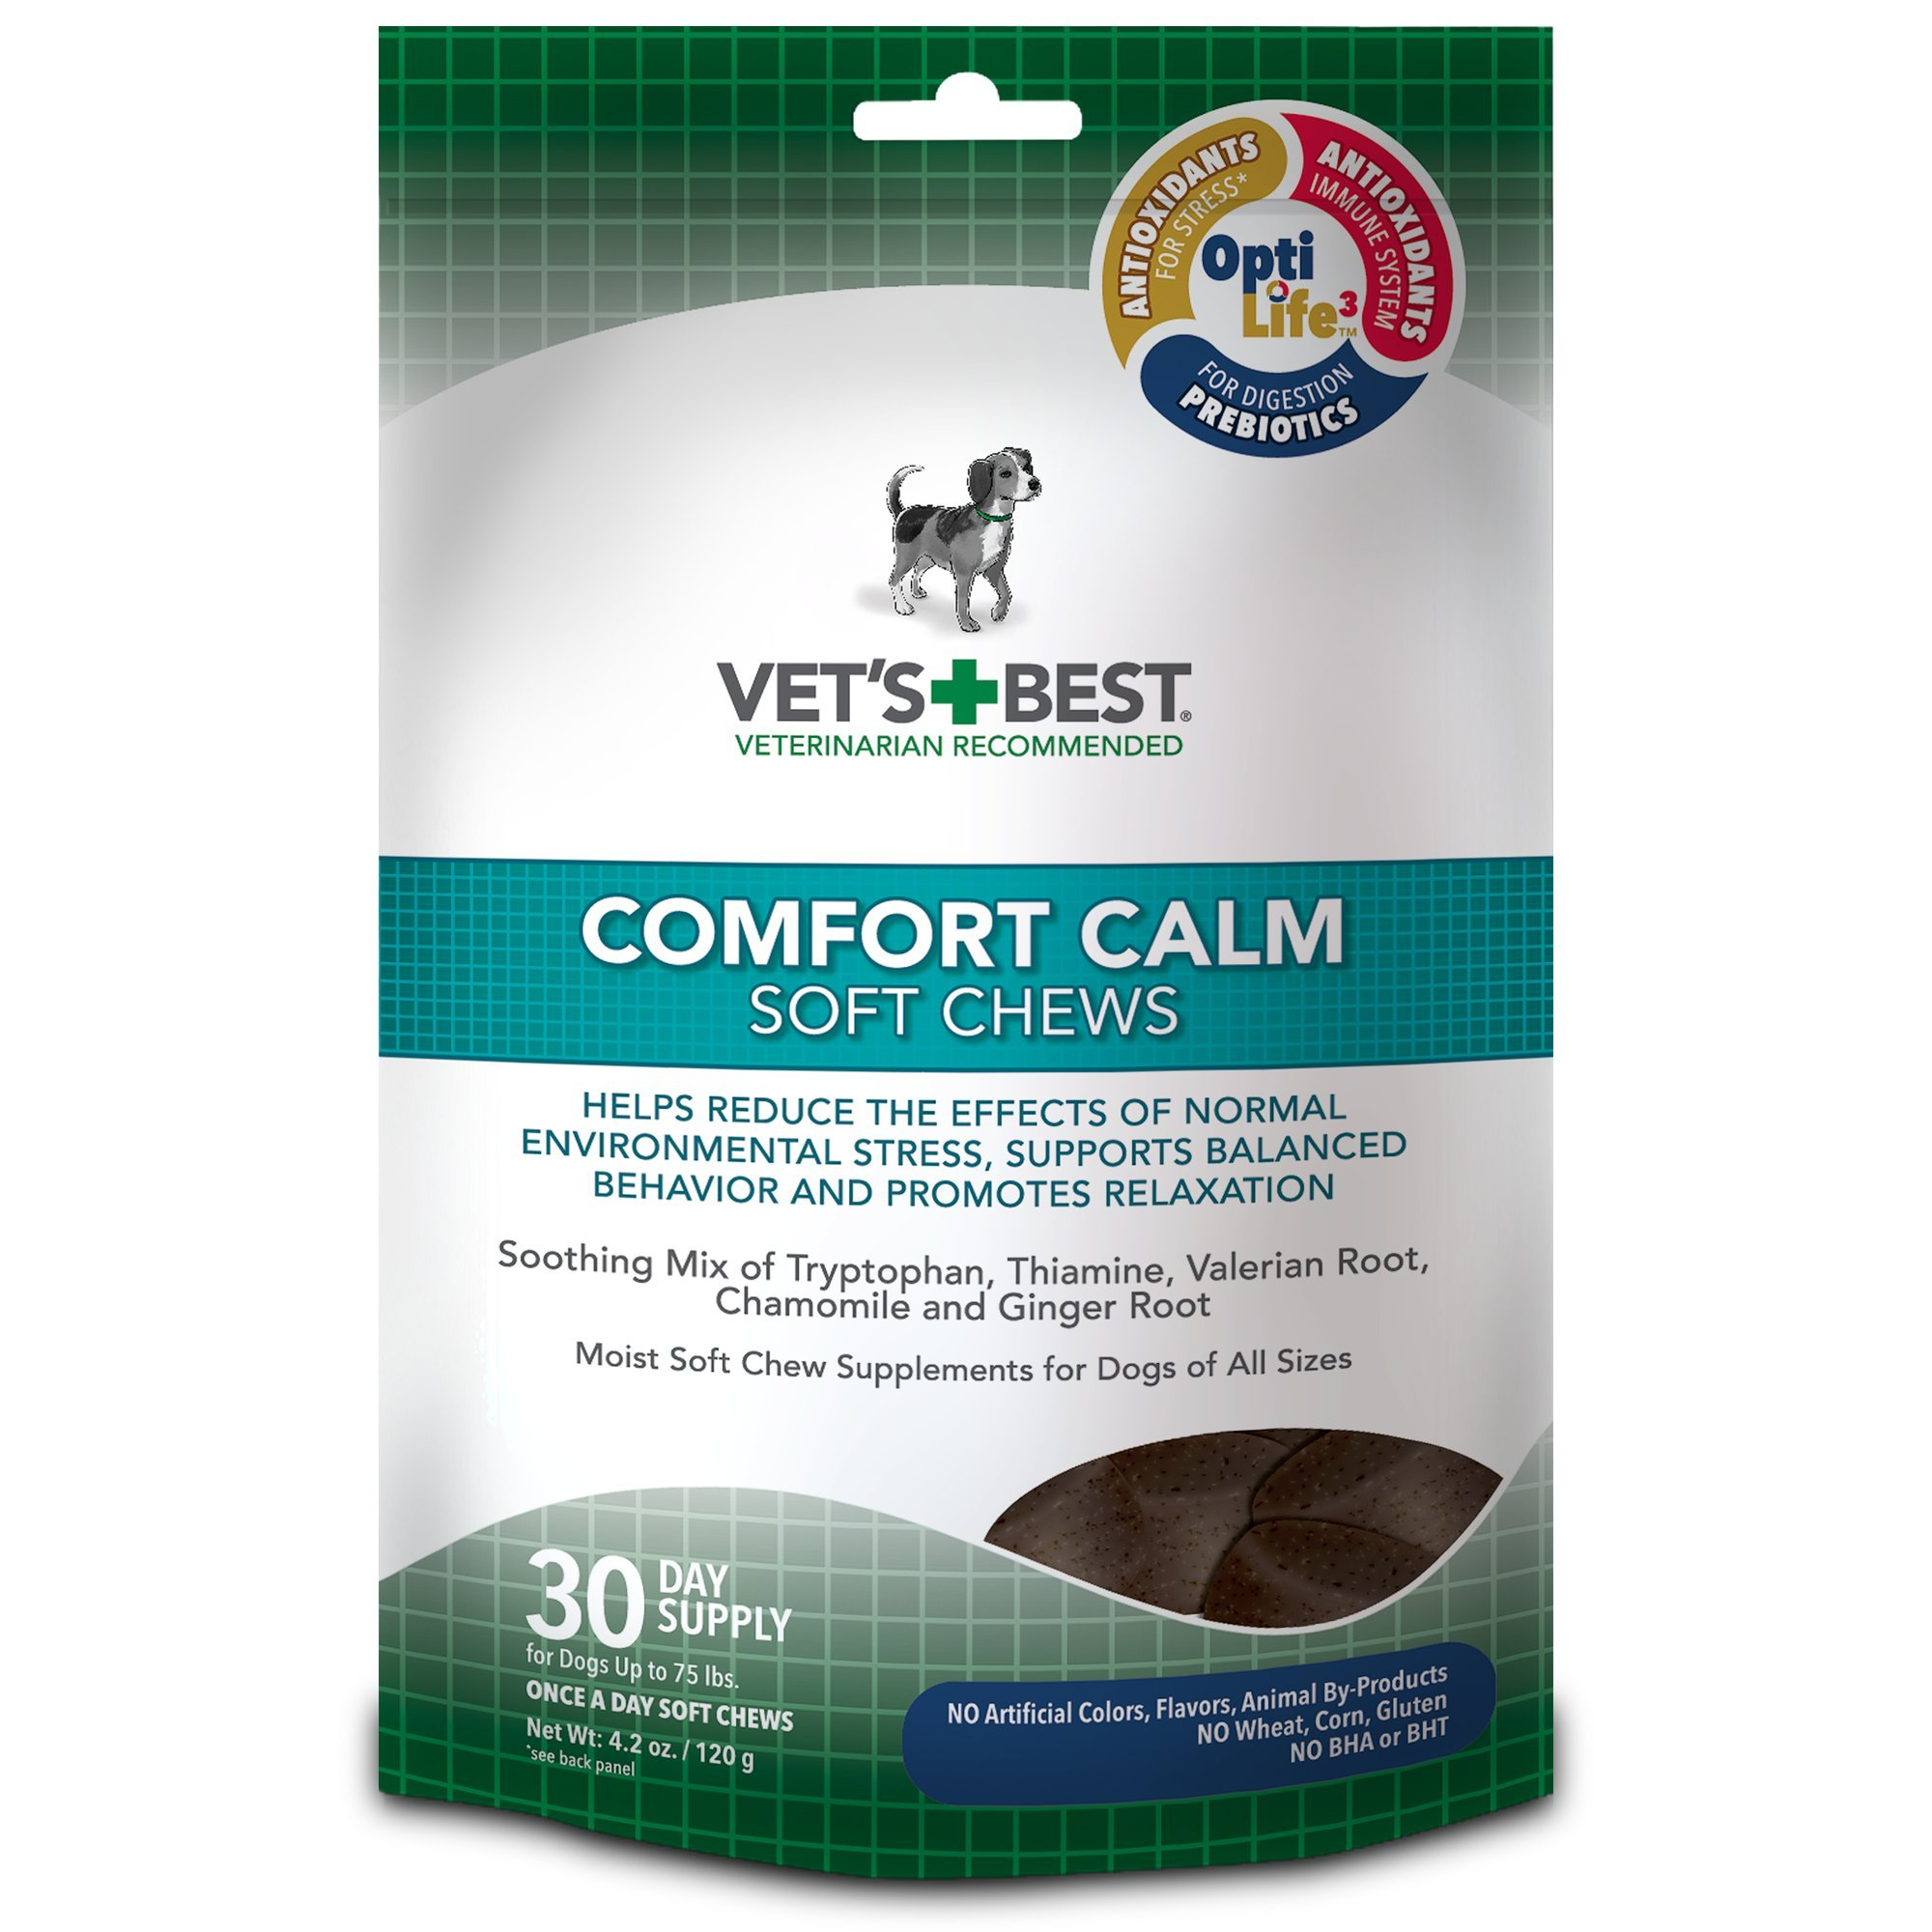 Vet's Best Comfort Calm Calming Soft Chews Dog Supplements 30 Day Supply 1 pack